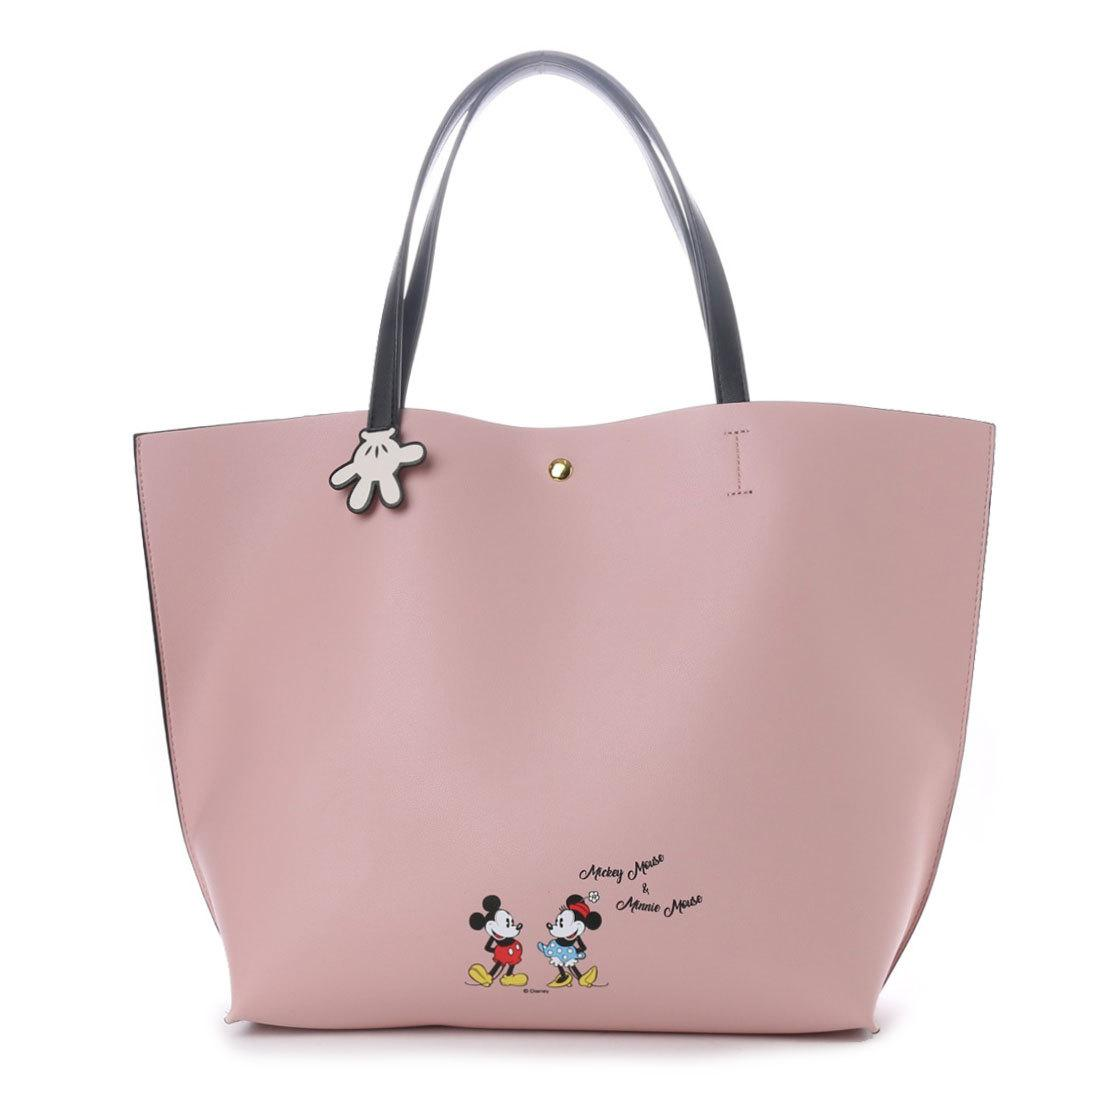 Colors By Jennifer Sky Limited Collection Mickey Mouse Tote Bag Shoulder Bag By Ryan&rayla.